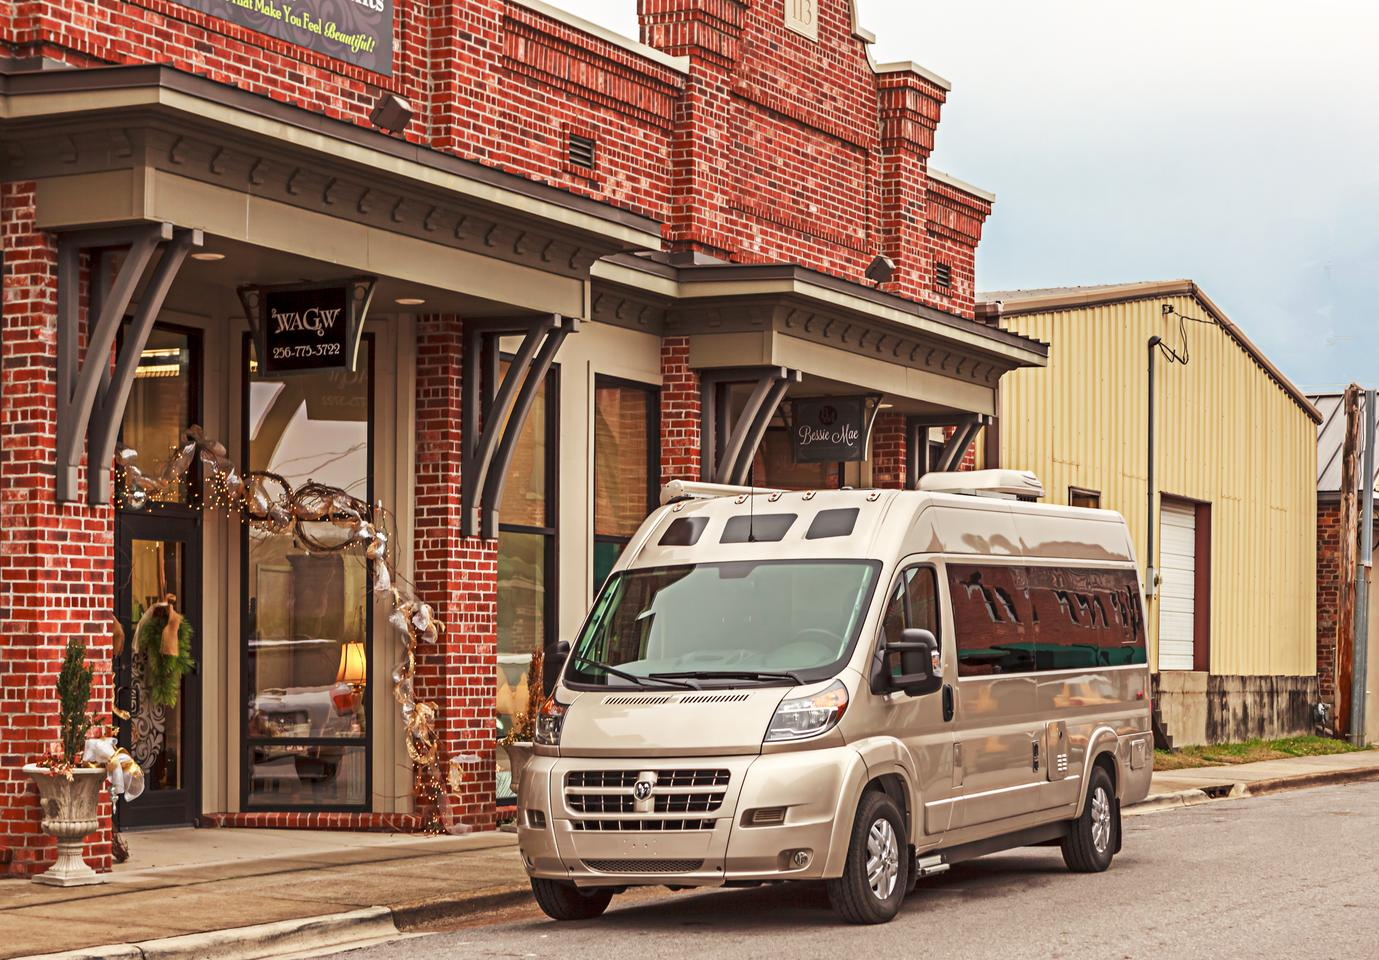 The all-new Roadtrek Zion should be hitting dealerships right about now